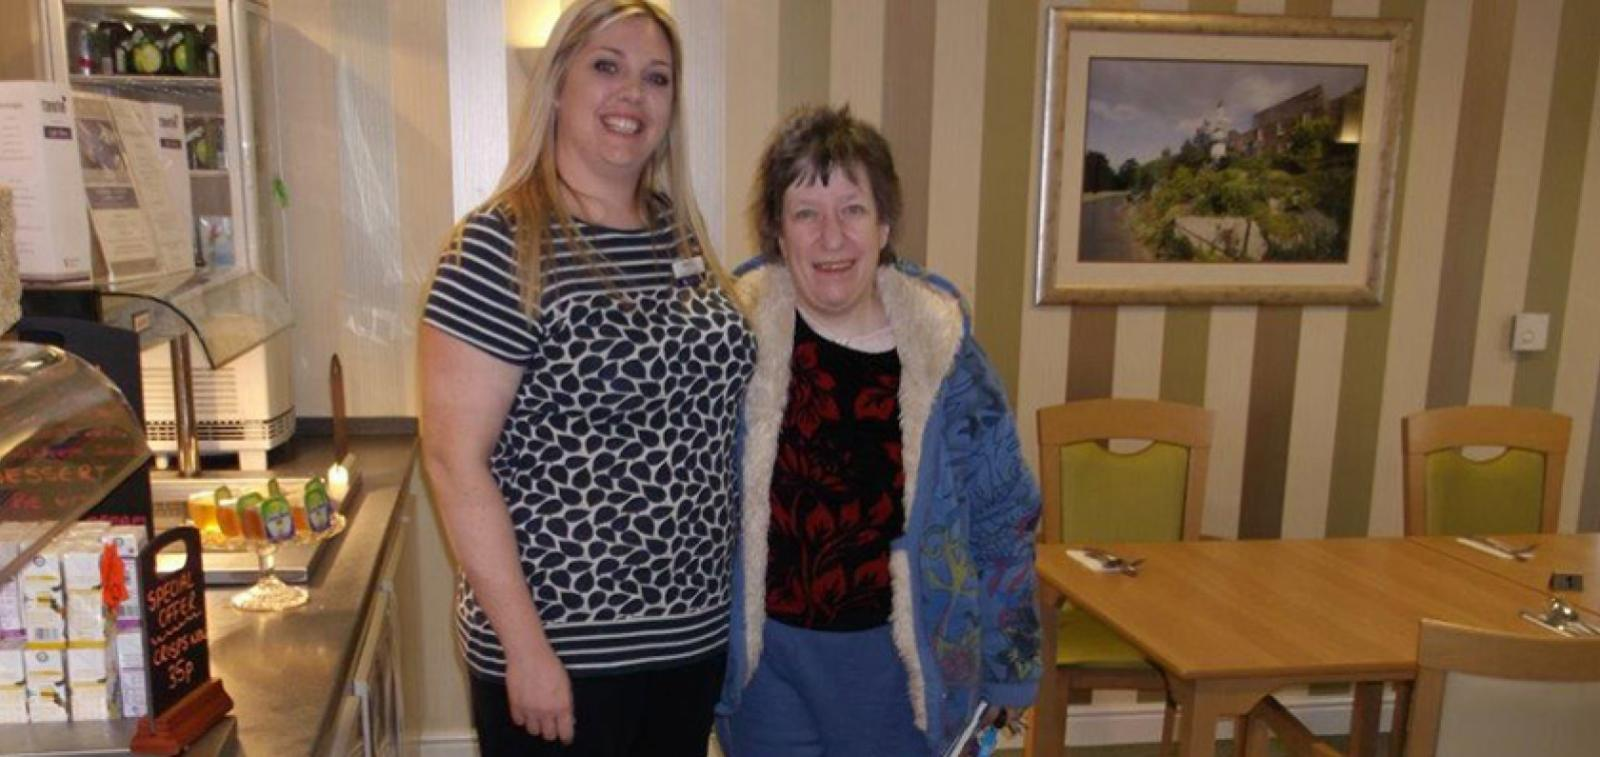 Scheme service manager Grace Beer with Dunboyne Court resident Jane Gibbs.